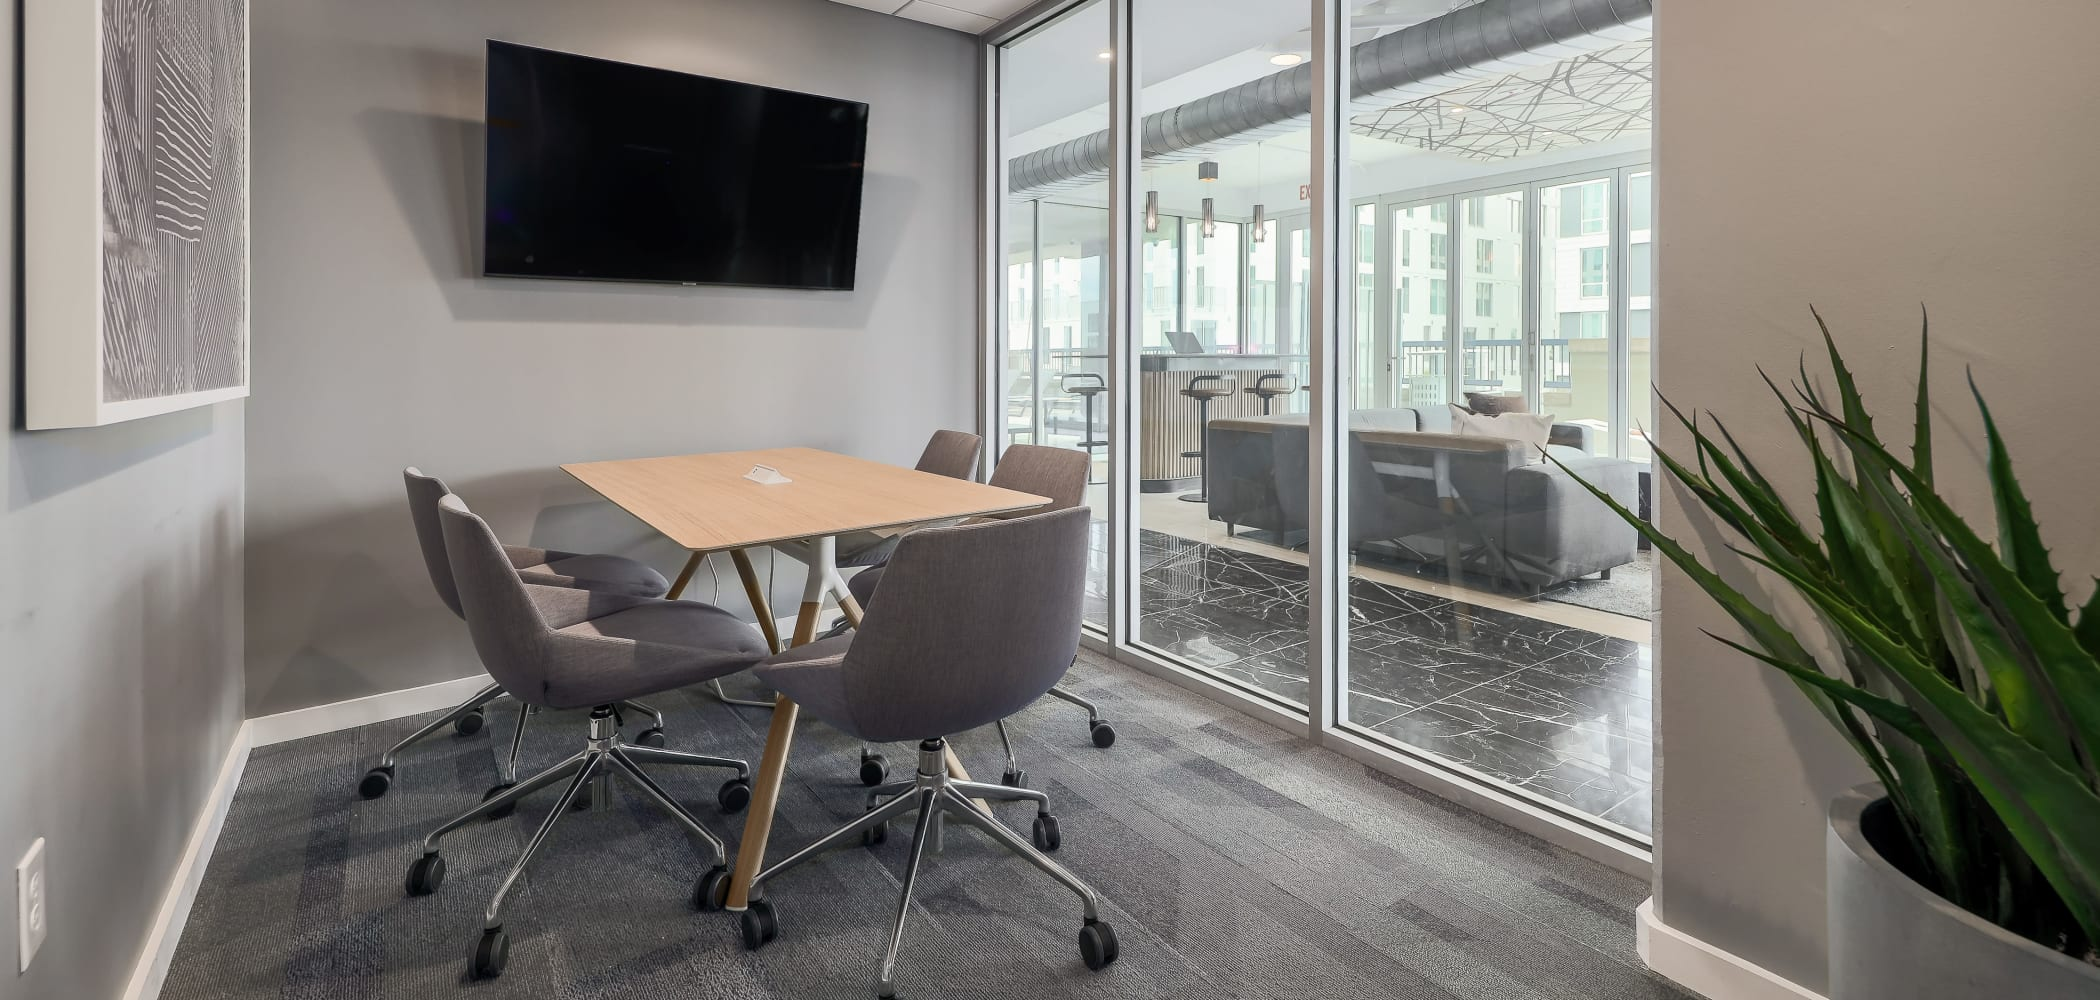 Private Study/Meeting Room at 21 Rio | Student Apartments in Austin, Texas